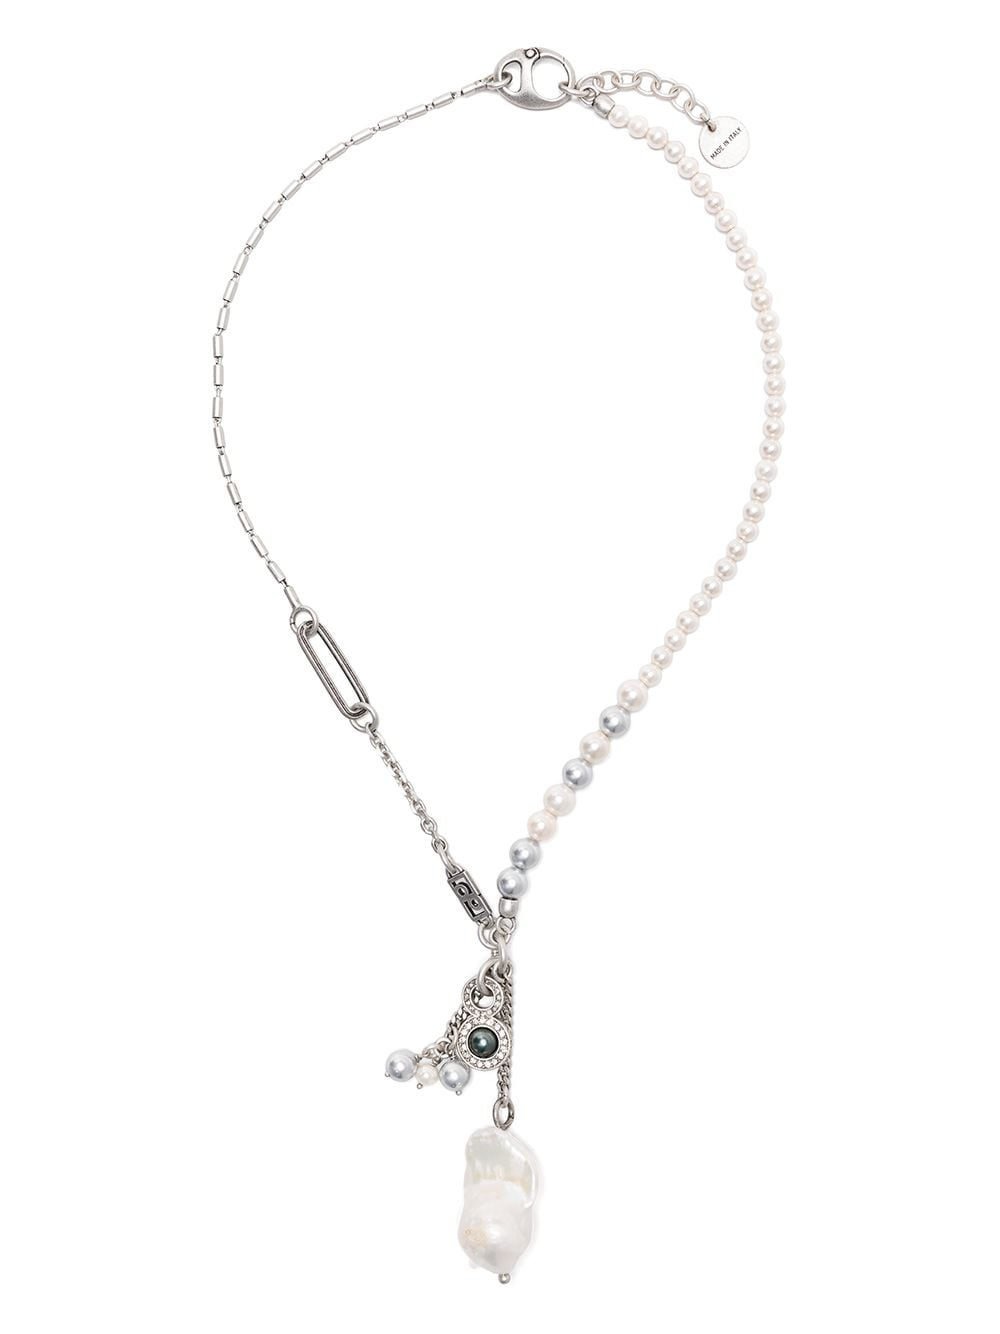 Ports 1961 Necklace $312.00